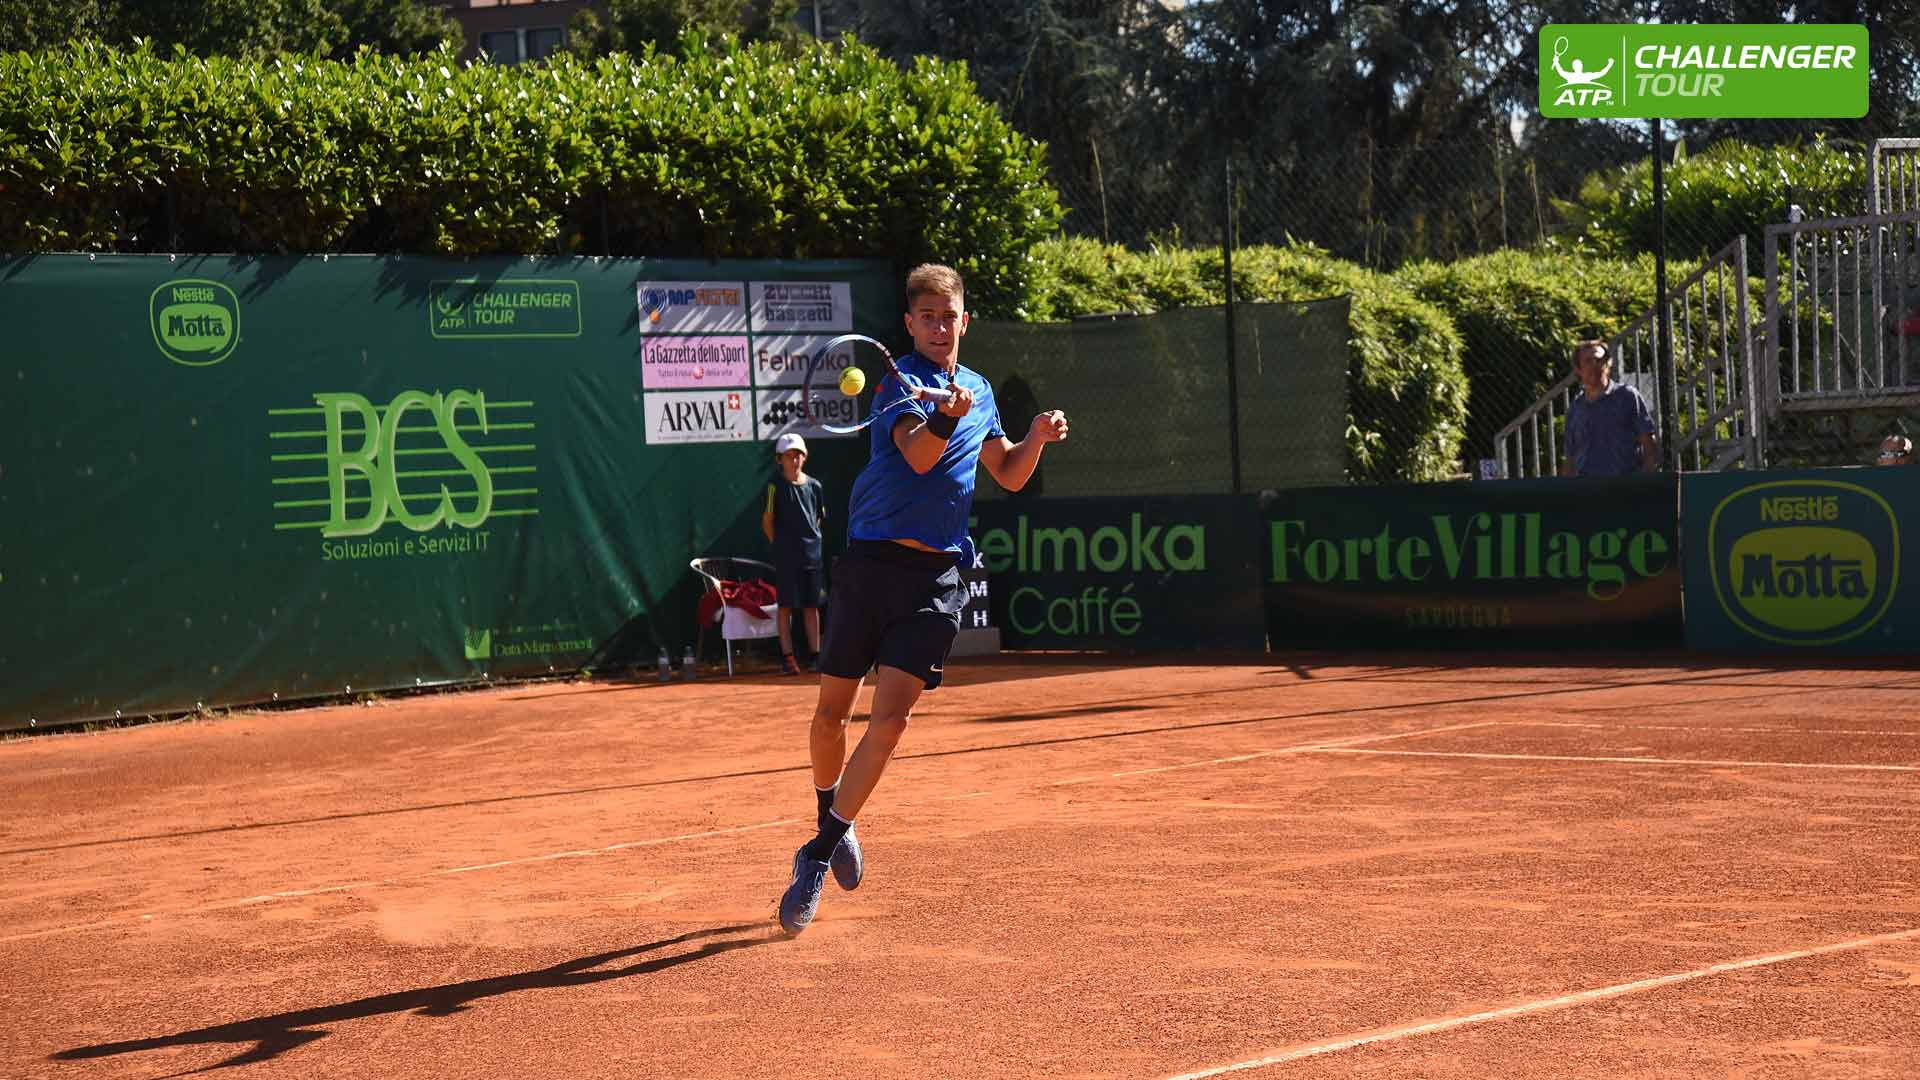 Matteo Donati plays a shot at the ATP Challenger Tour event in Milan.